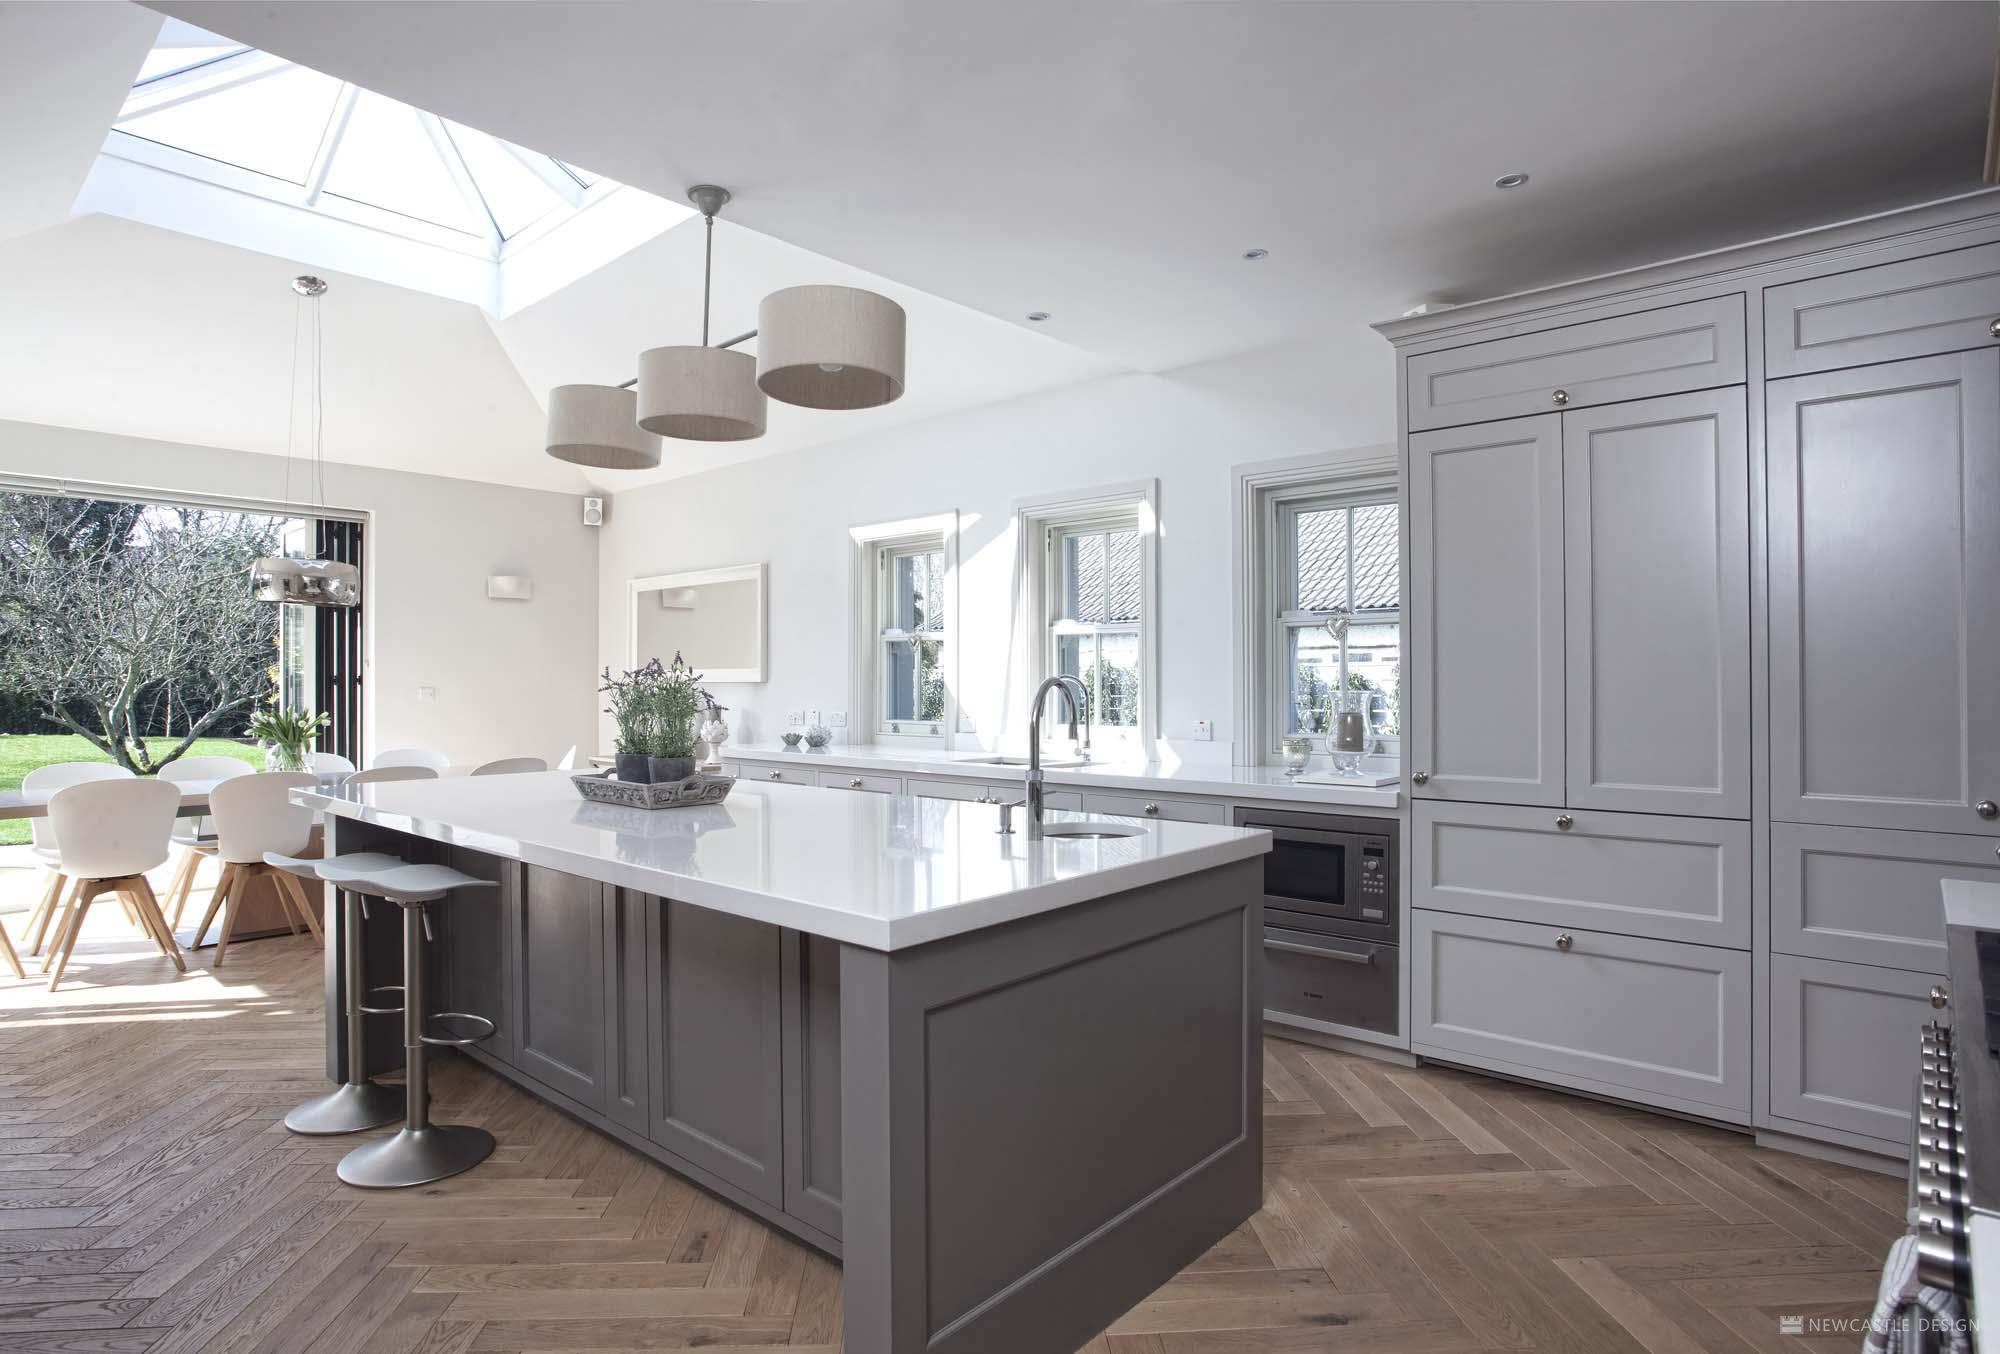 West Country Kitchens